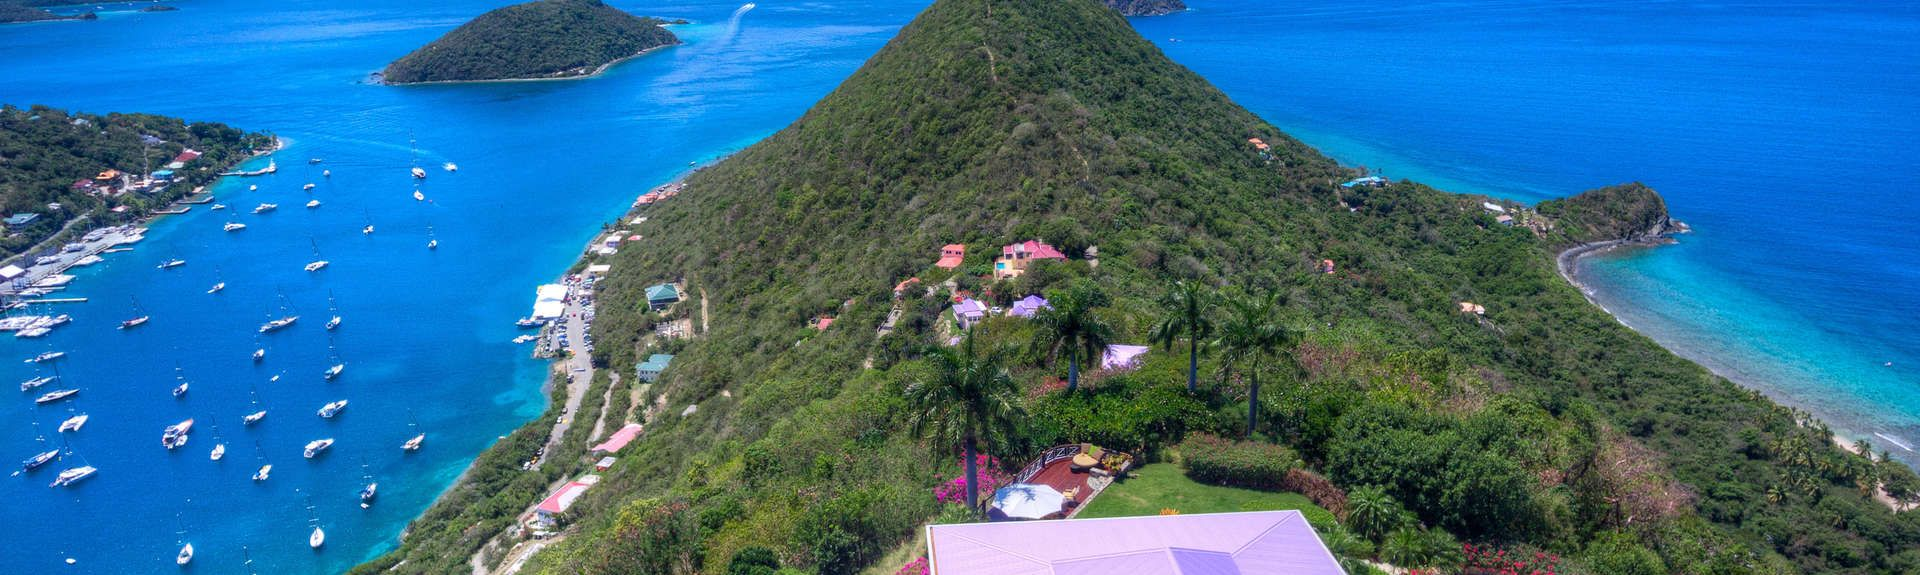 Smuggler's Cove, Tortola, British Virgin Islands